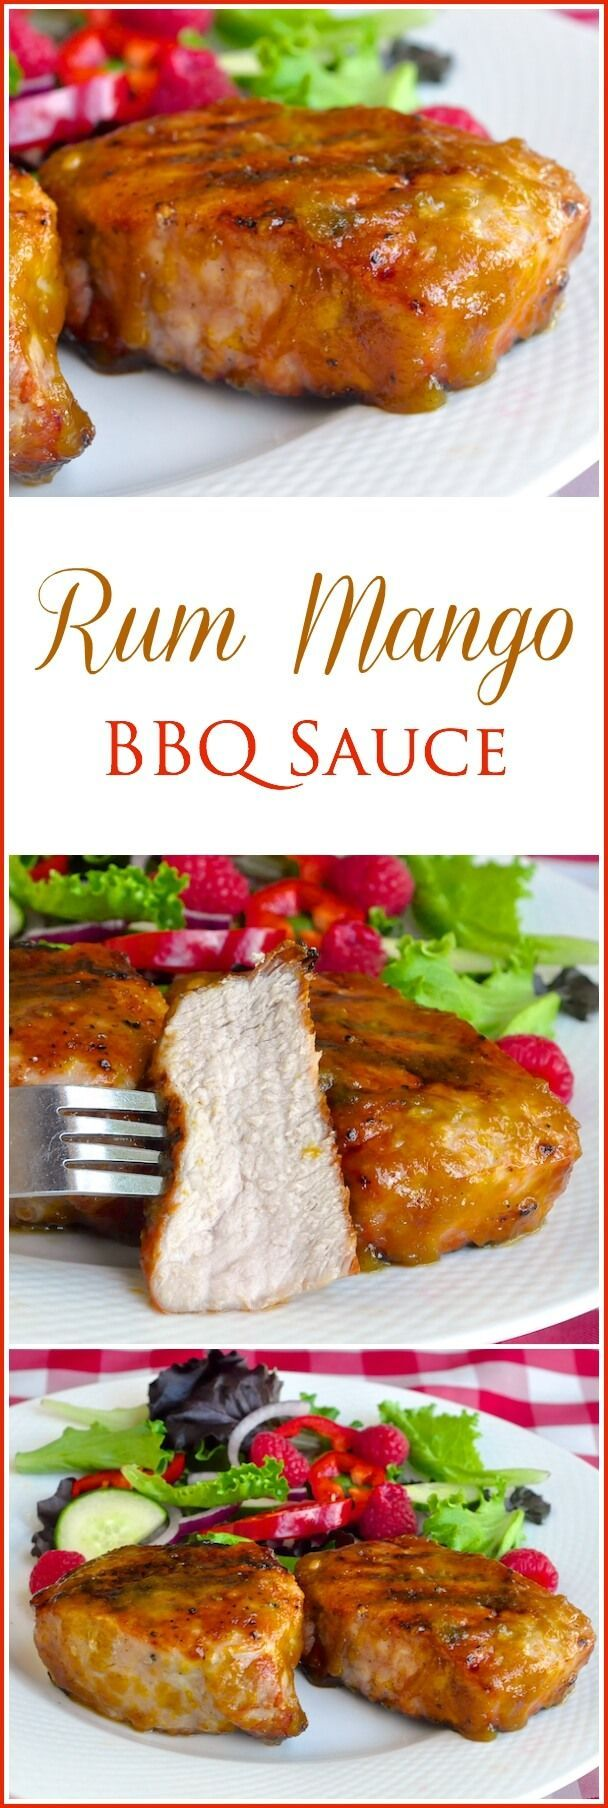 Rum Mango Barbecue Sauce - Add a totally tropical twist to your grilled chicken or pork with this amazing, flavorful mango barbecue sauce. A splash of rum adds even more bright flavor.